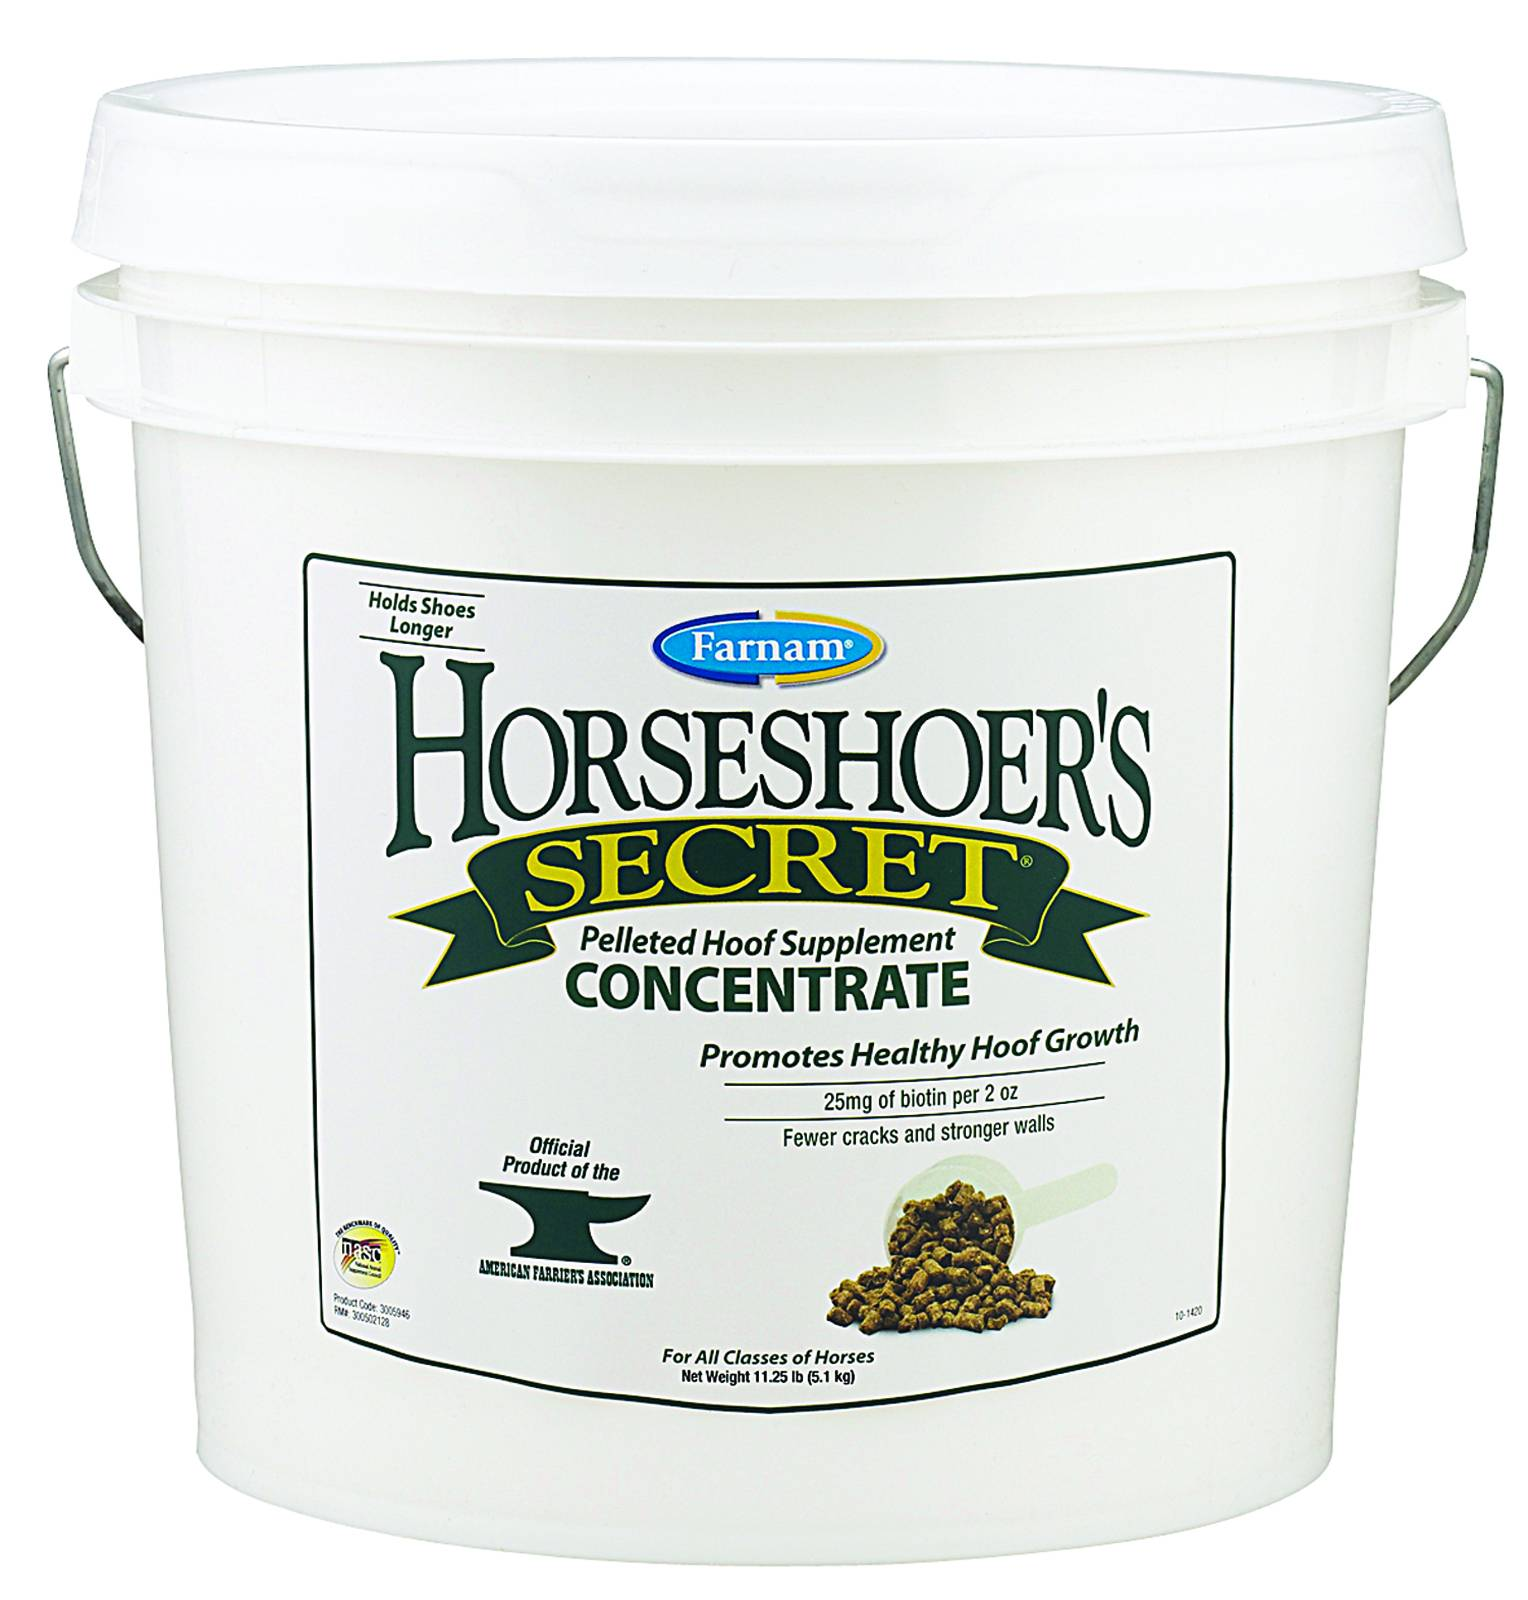 Farnam Horseshoers Secret Concentrate